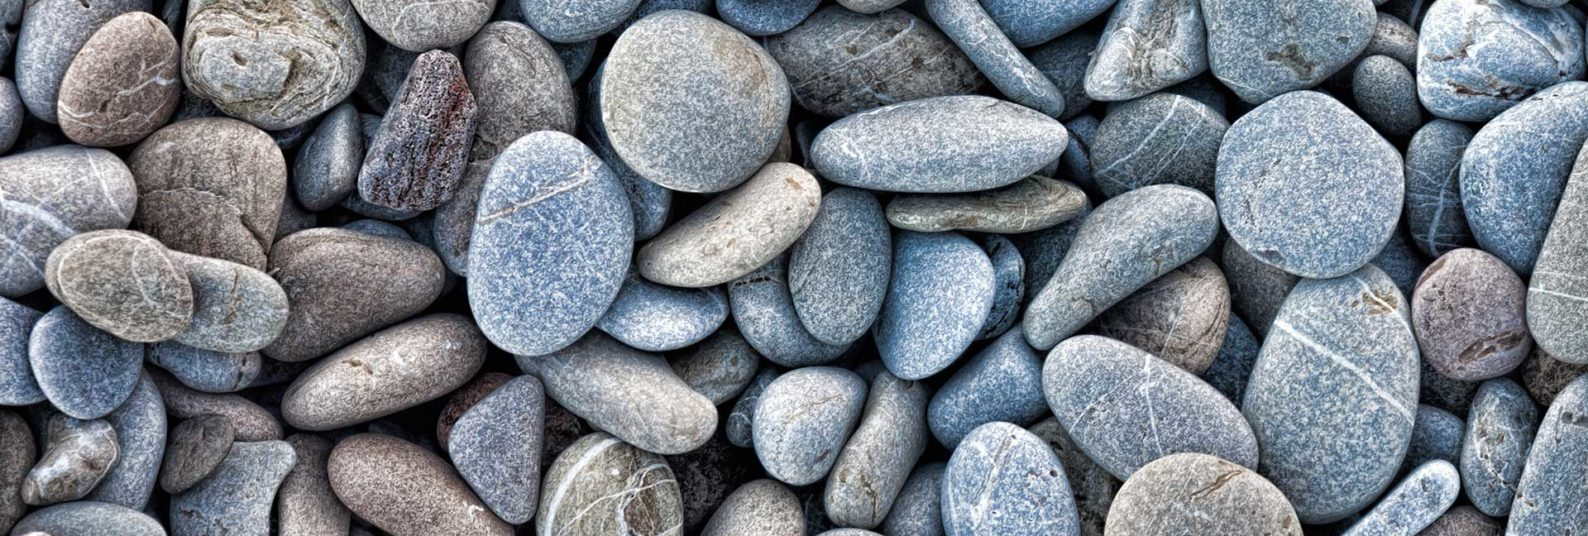 a collection of beach rocks and pebbles